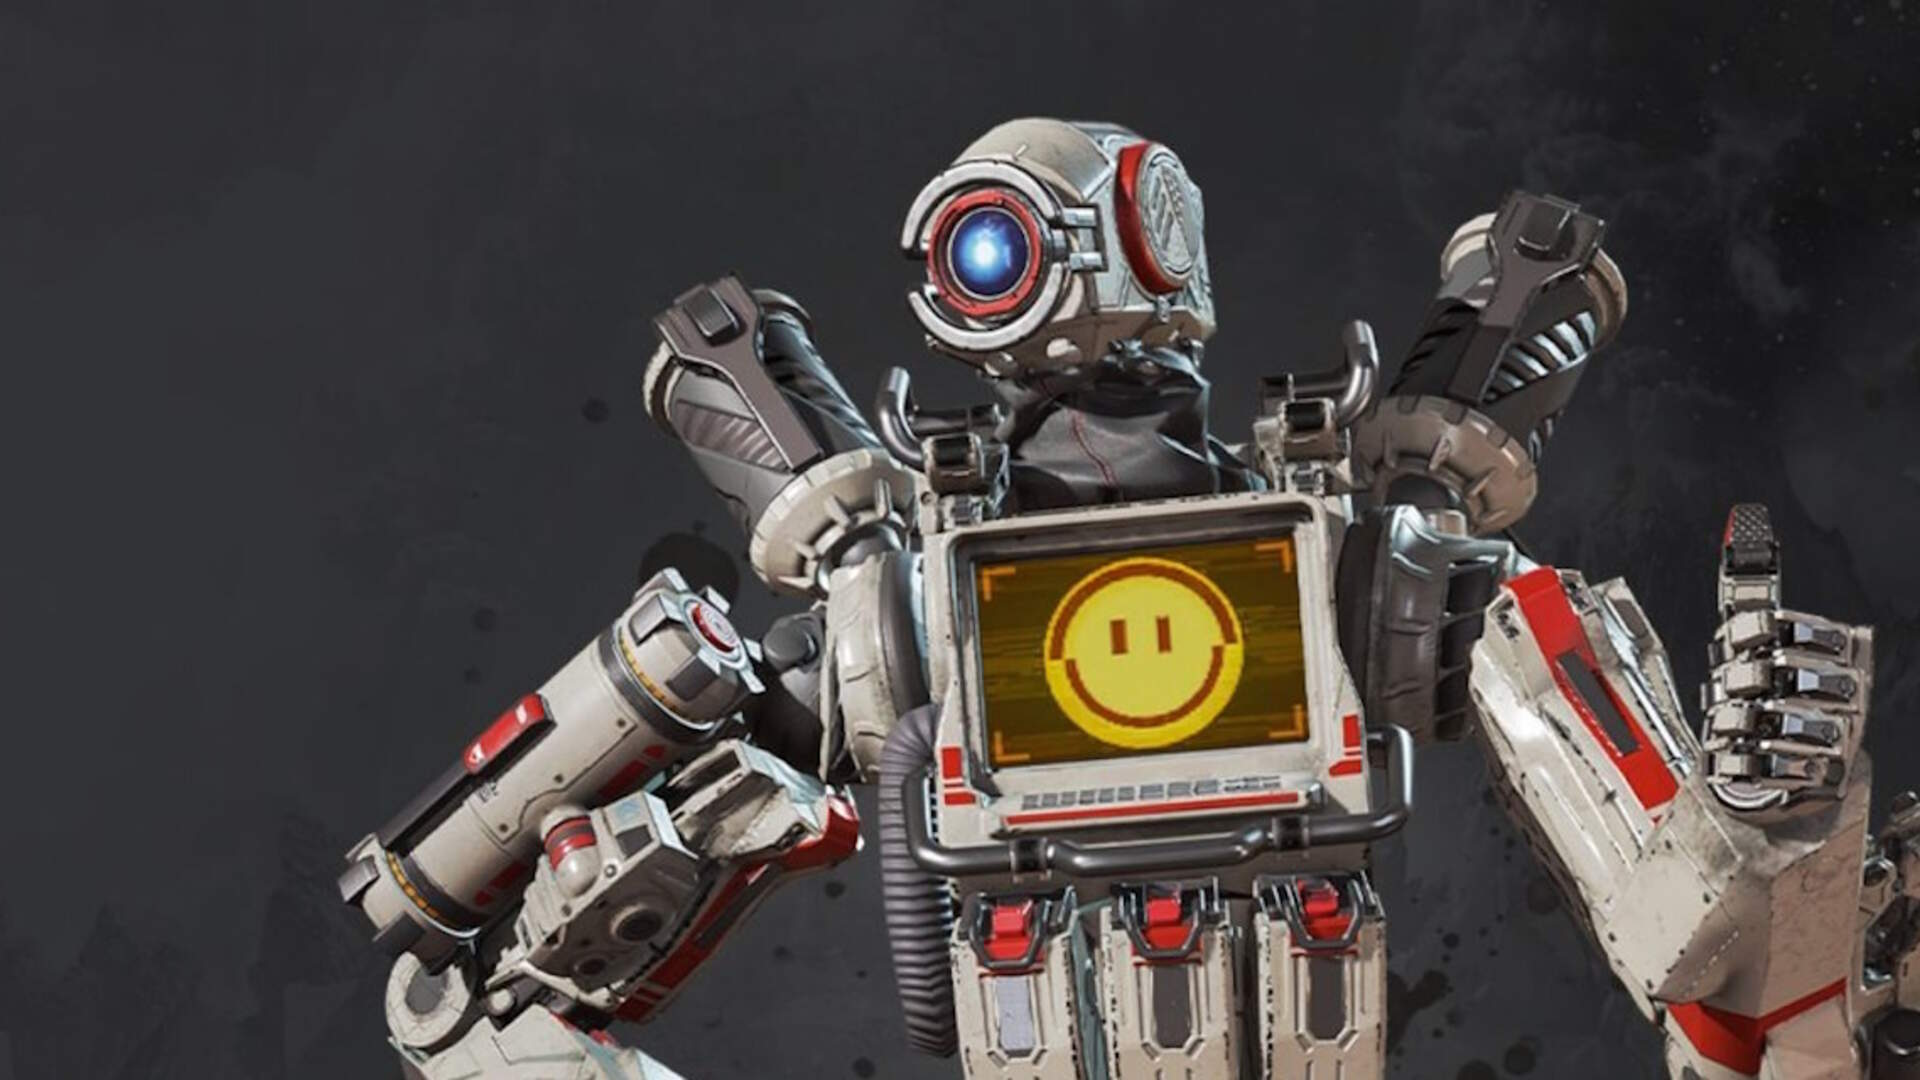 You Can Dress Up Apex Legends' Robot as the Droid From Jedi: Fallen Order